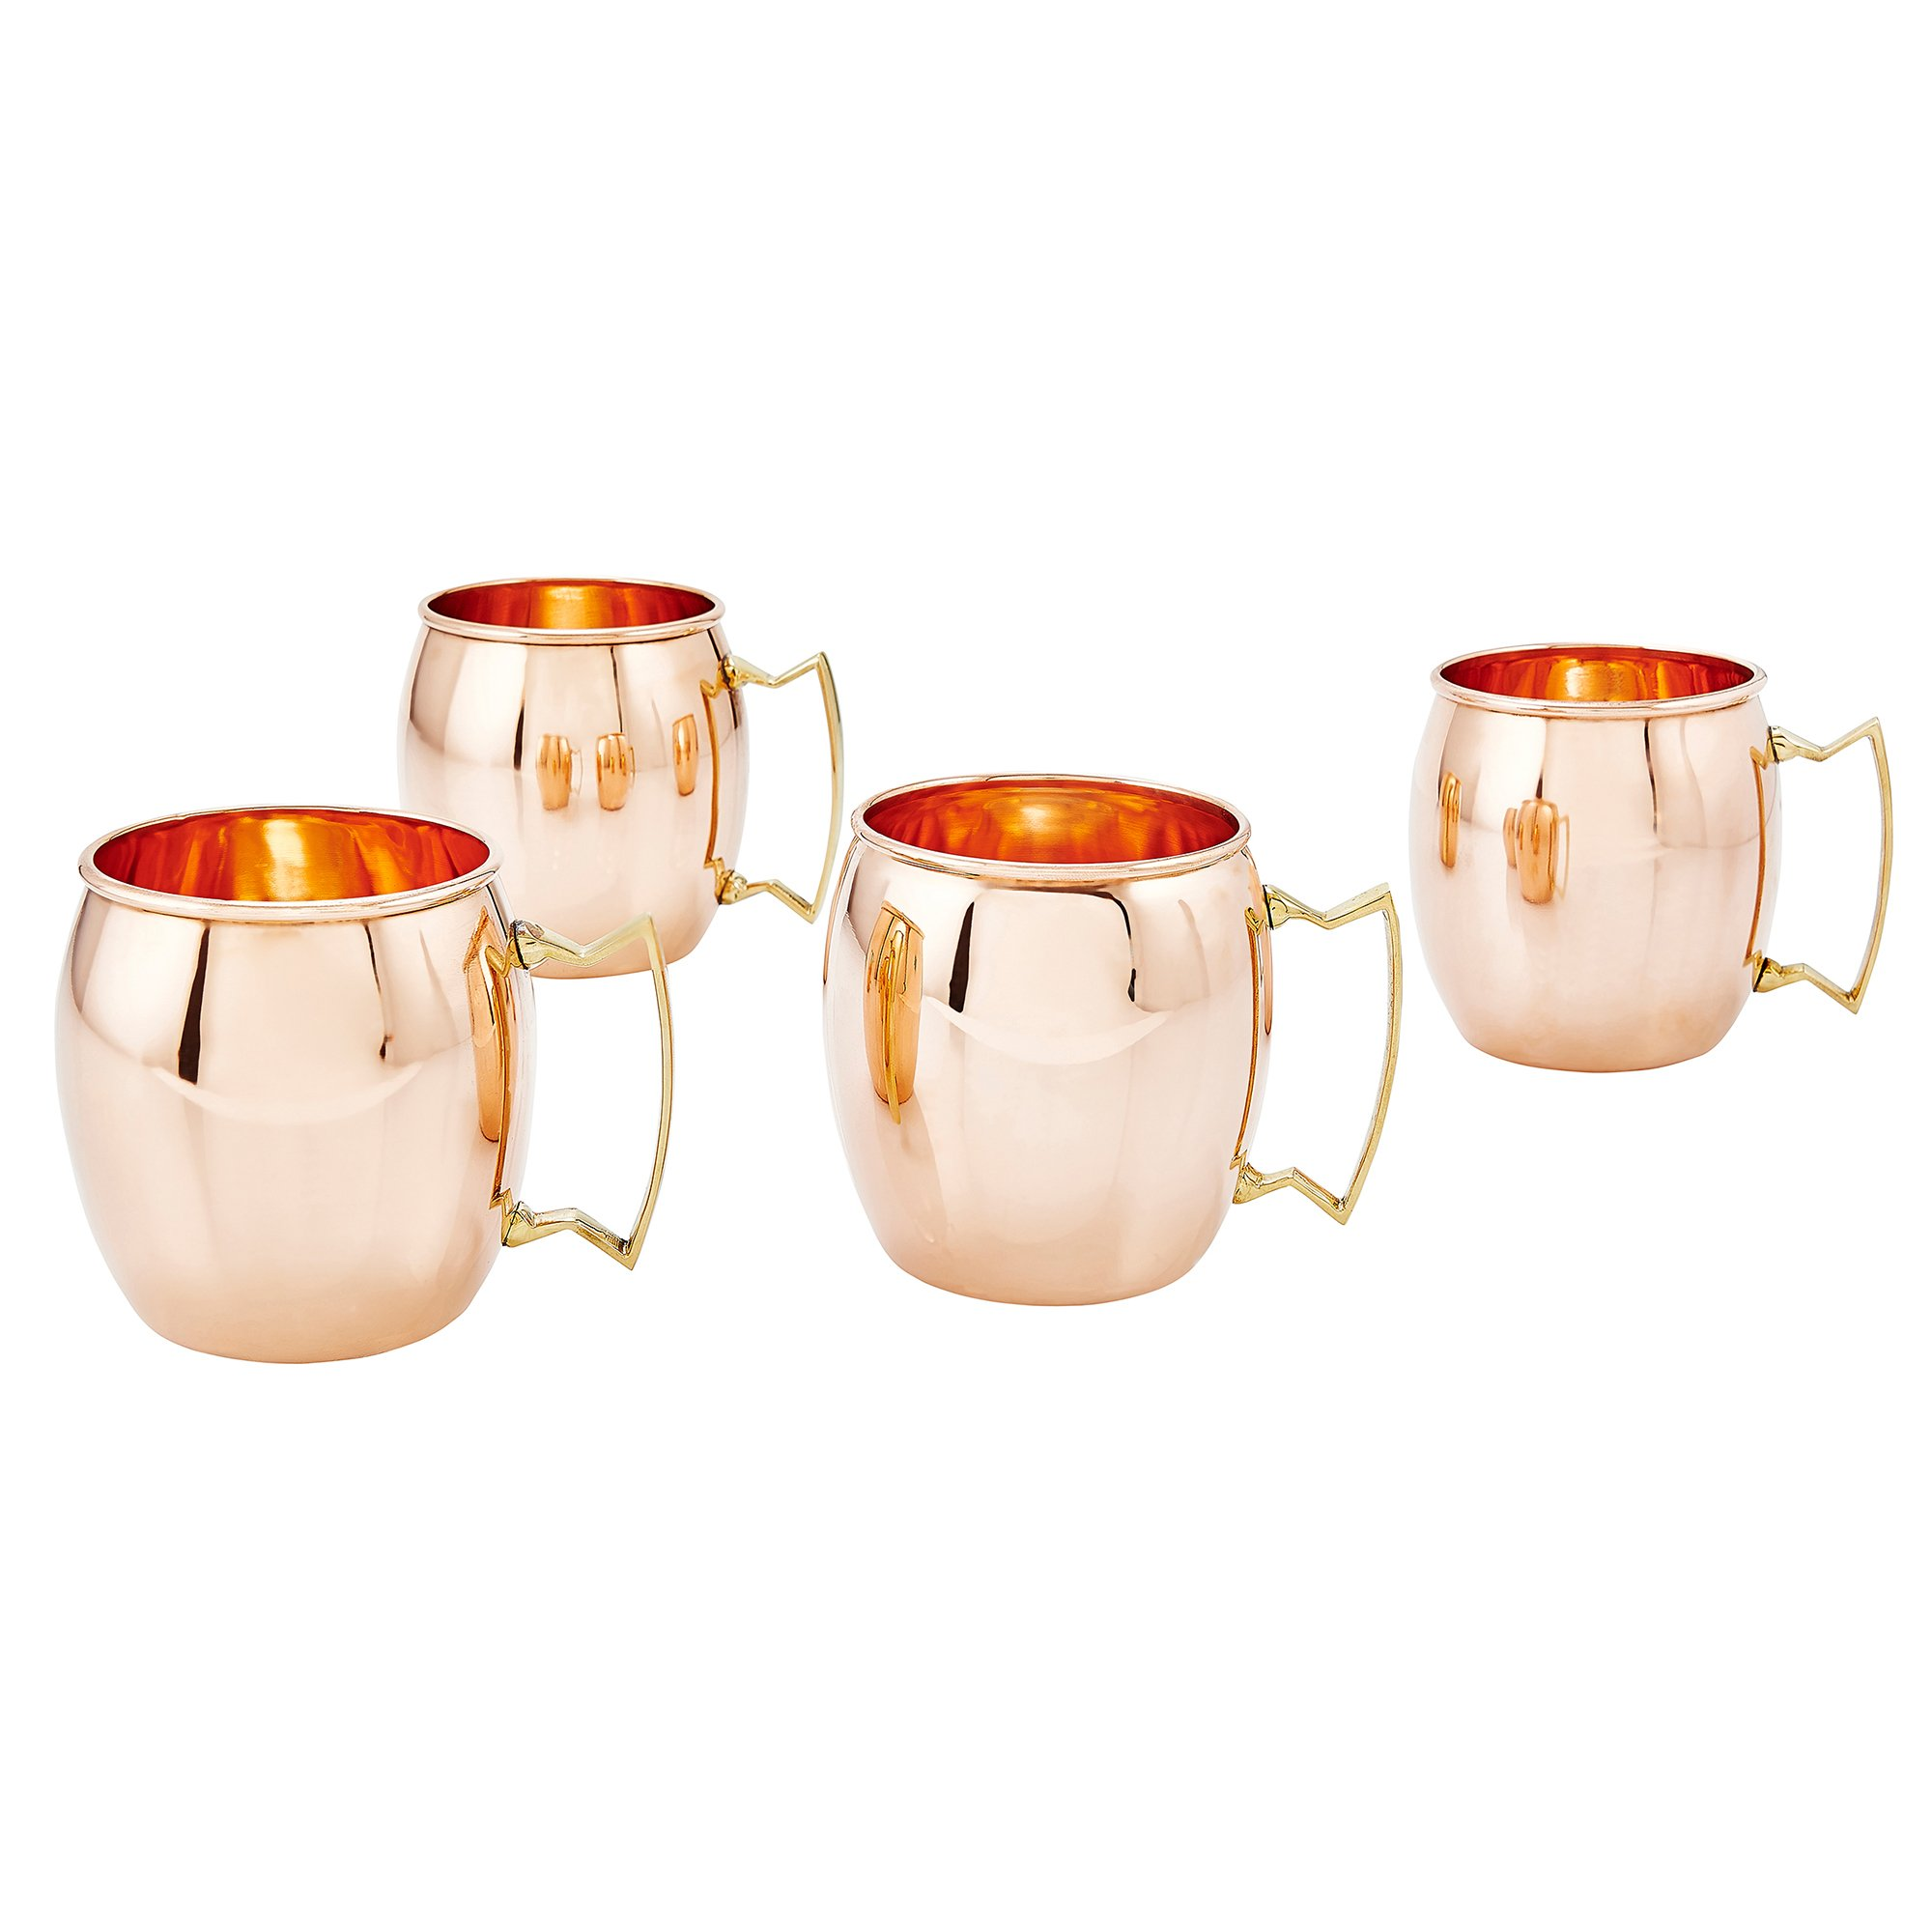 Old Dutch International, Purveyors of the ORIGINAL MOSCOW MULE MUG, 100% Pure Copper, Unlined Moscow Mule Mug, 16-Ounce, Set of 4